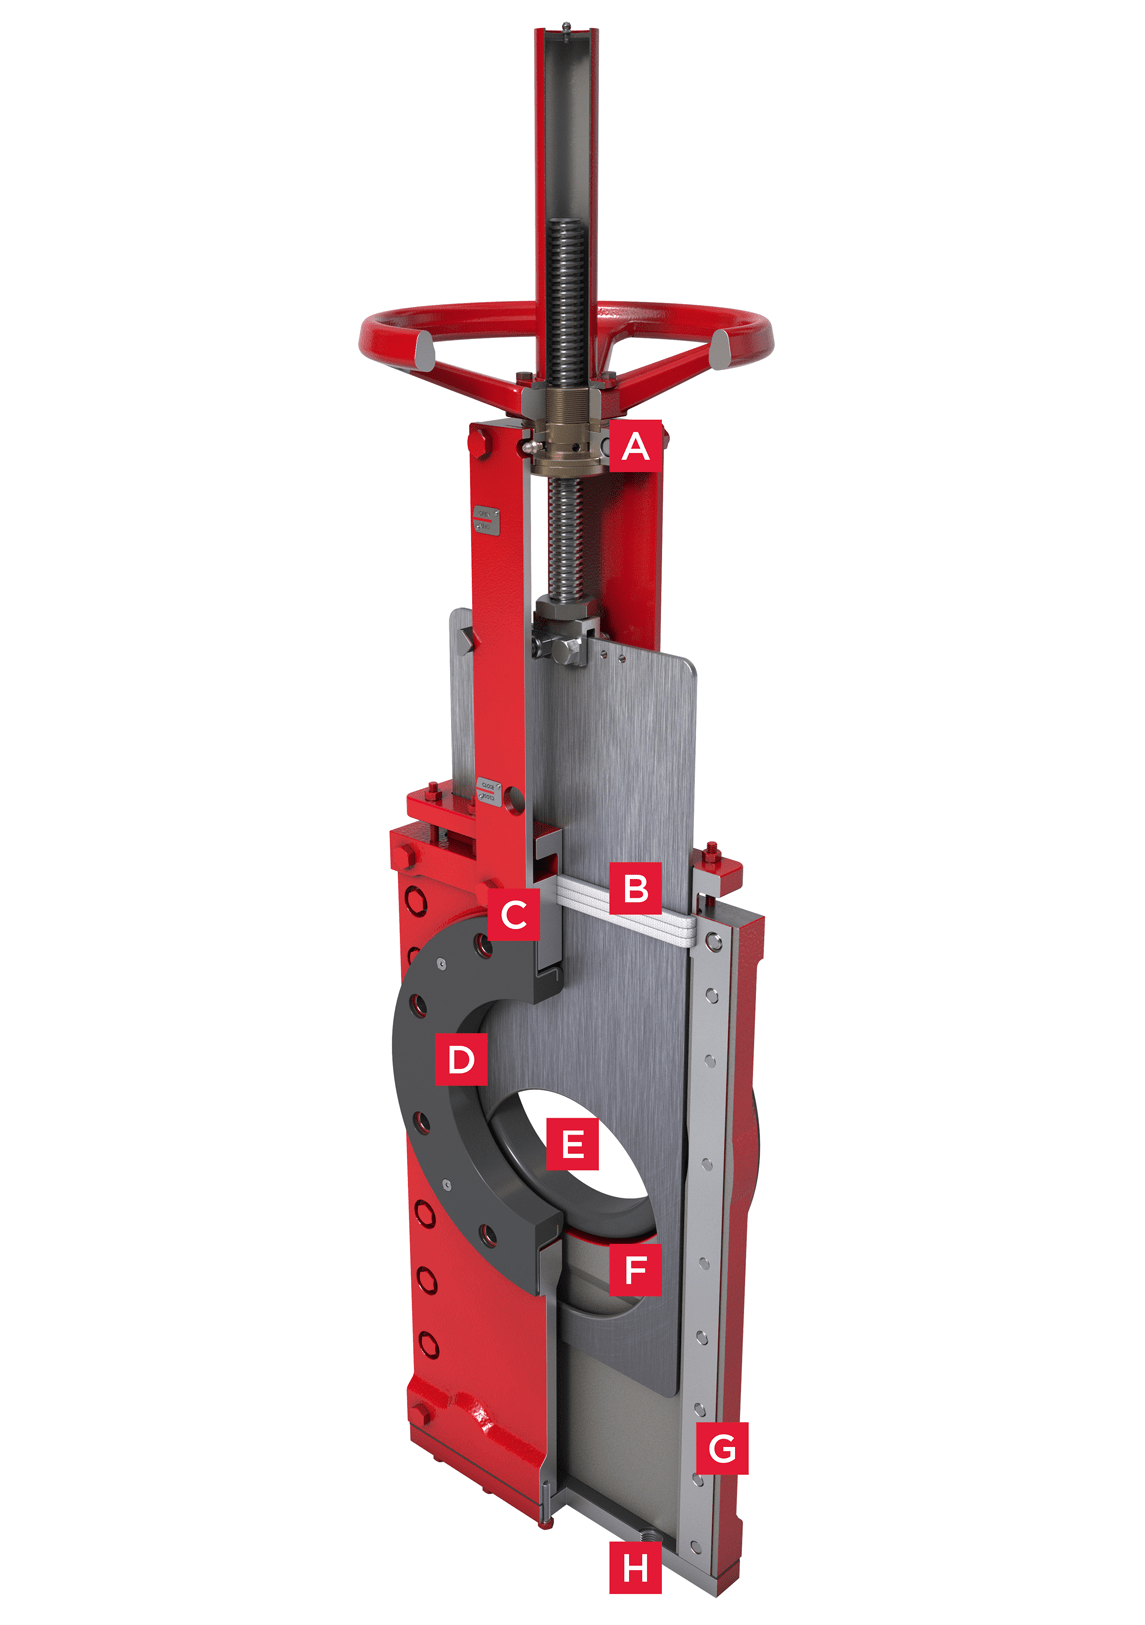 Bidirectional Knife Gate Valve Series 770 Features